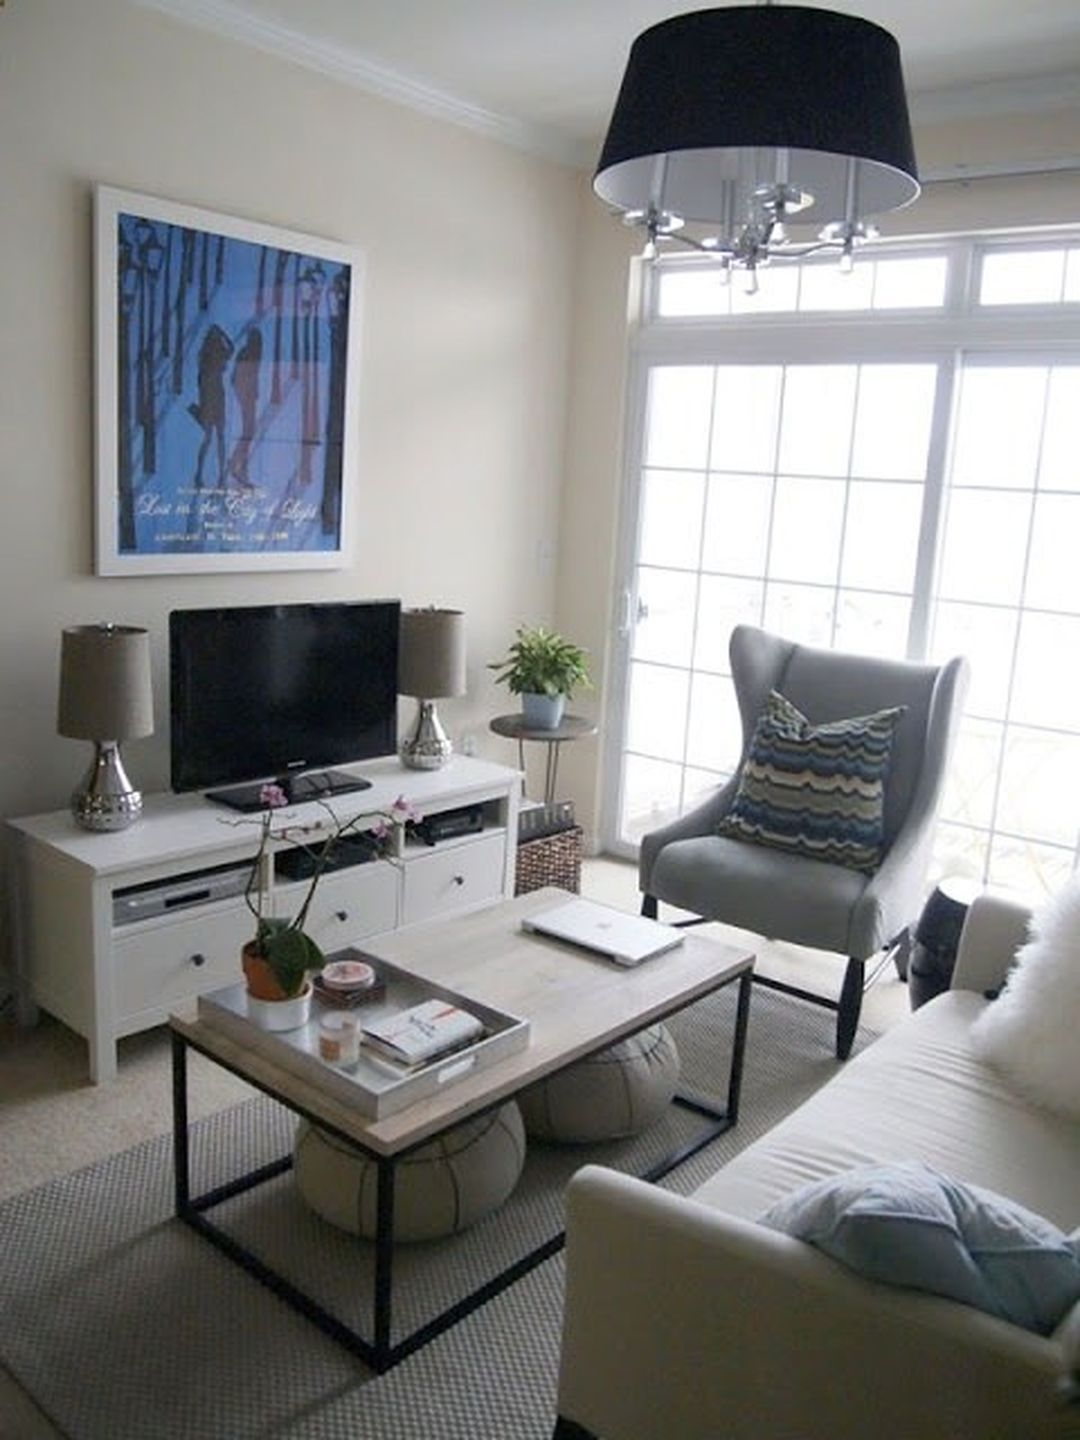 Smart Diy Small Apartment Decorating Ideas On A Budget Small